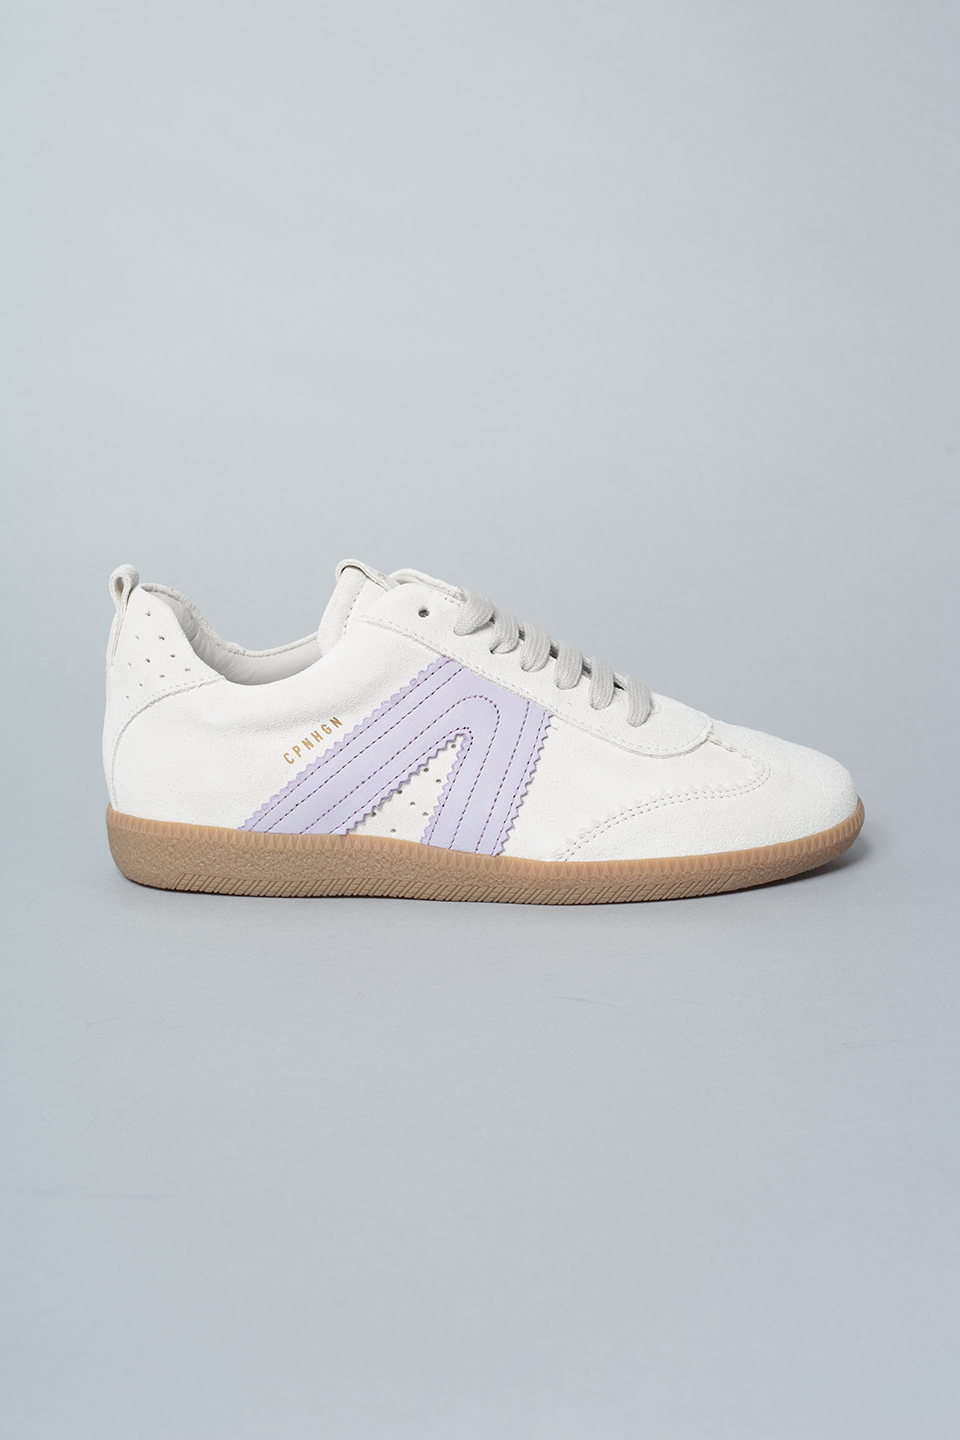 CPH413 crosta white/lavender - alternative 2